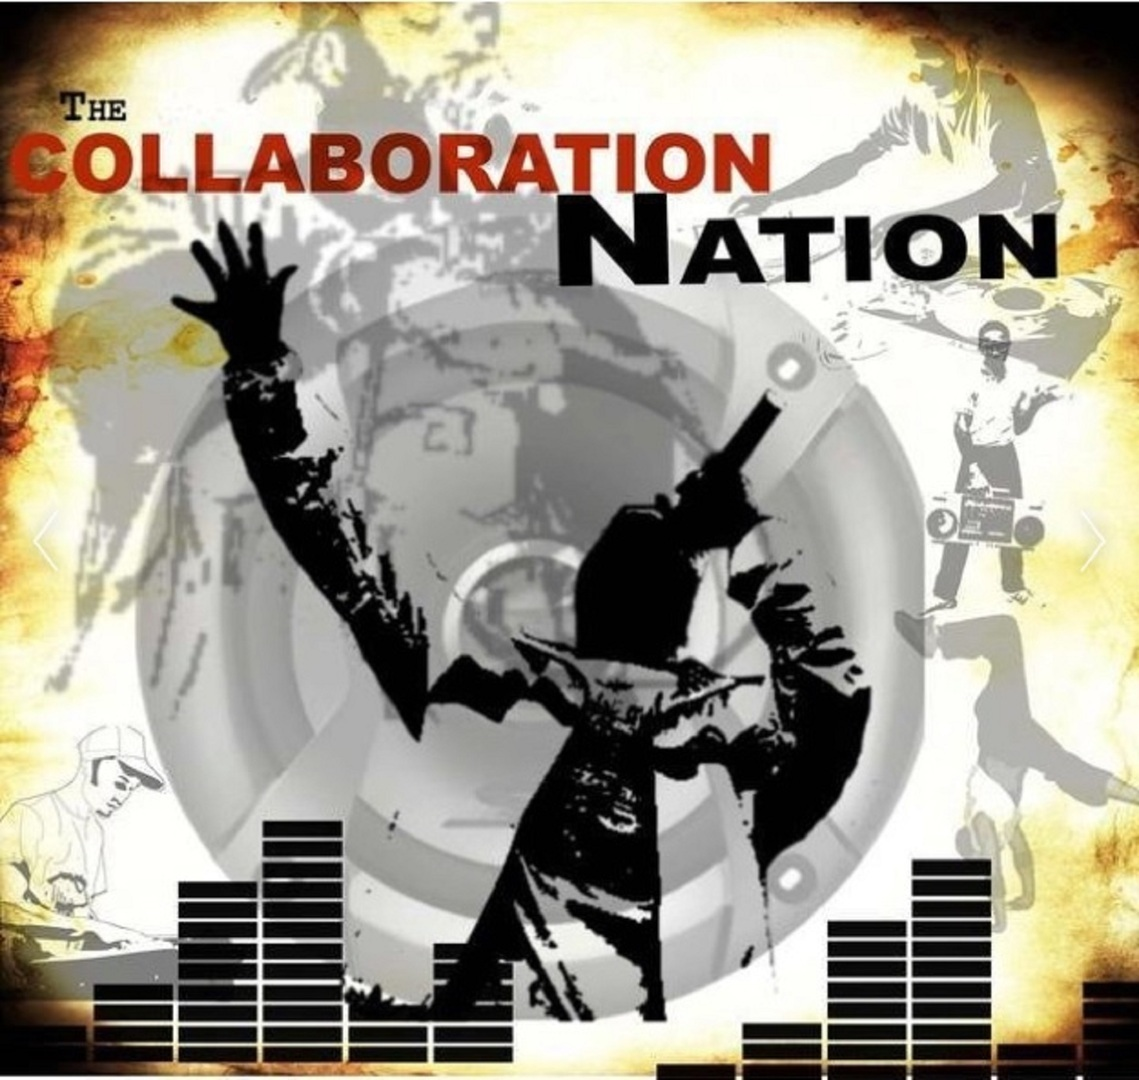 Collaboration nation 1920 x 1821